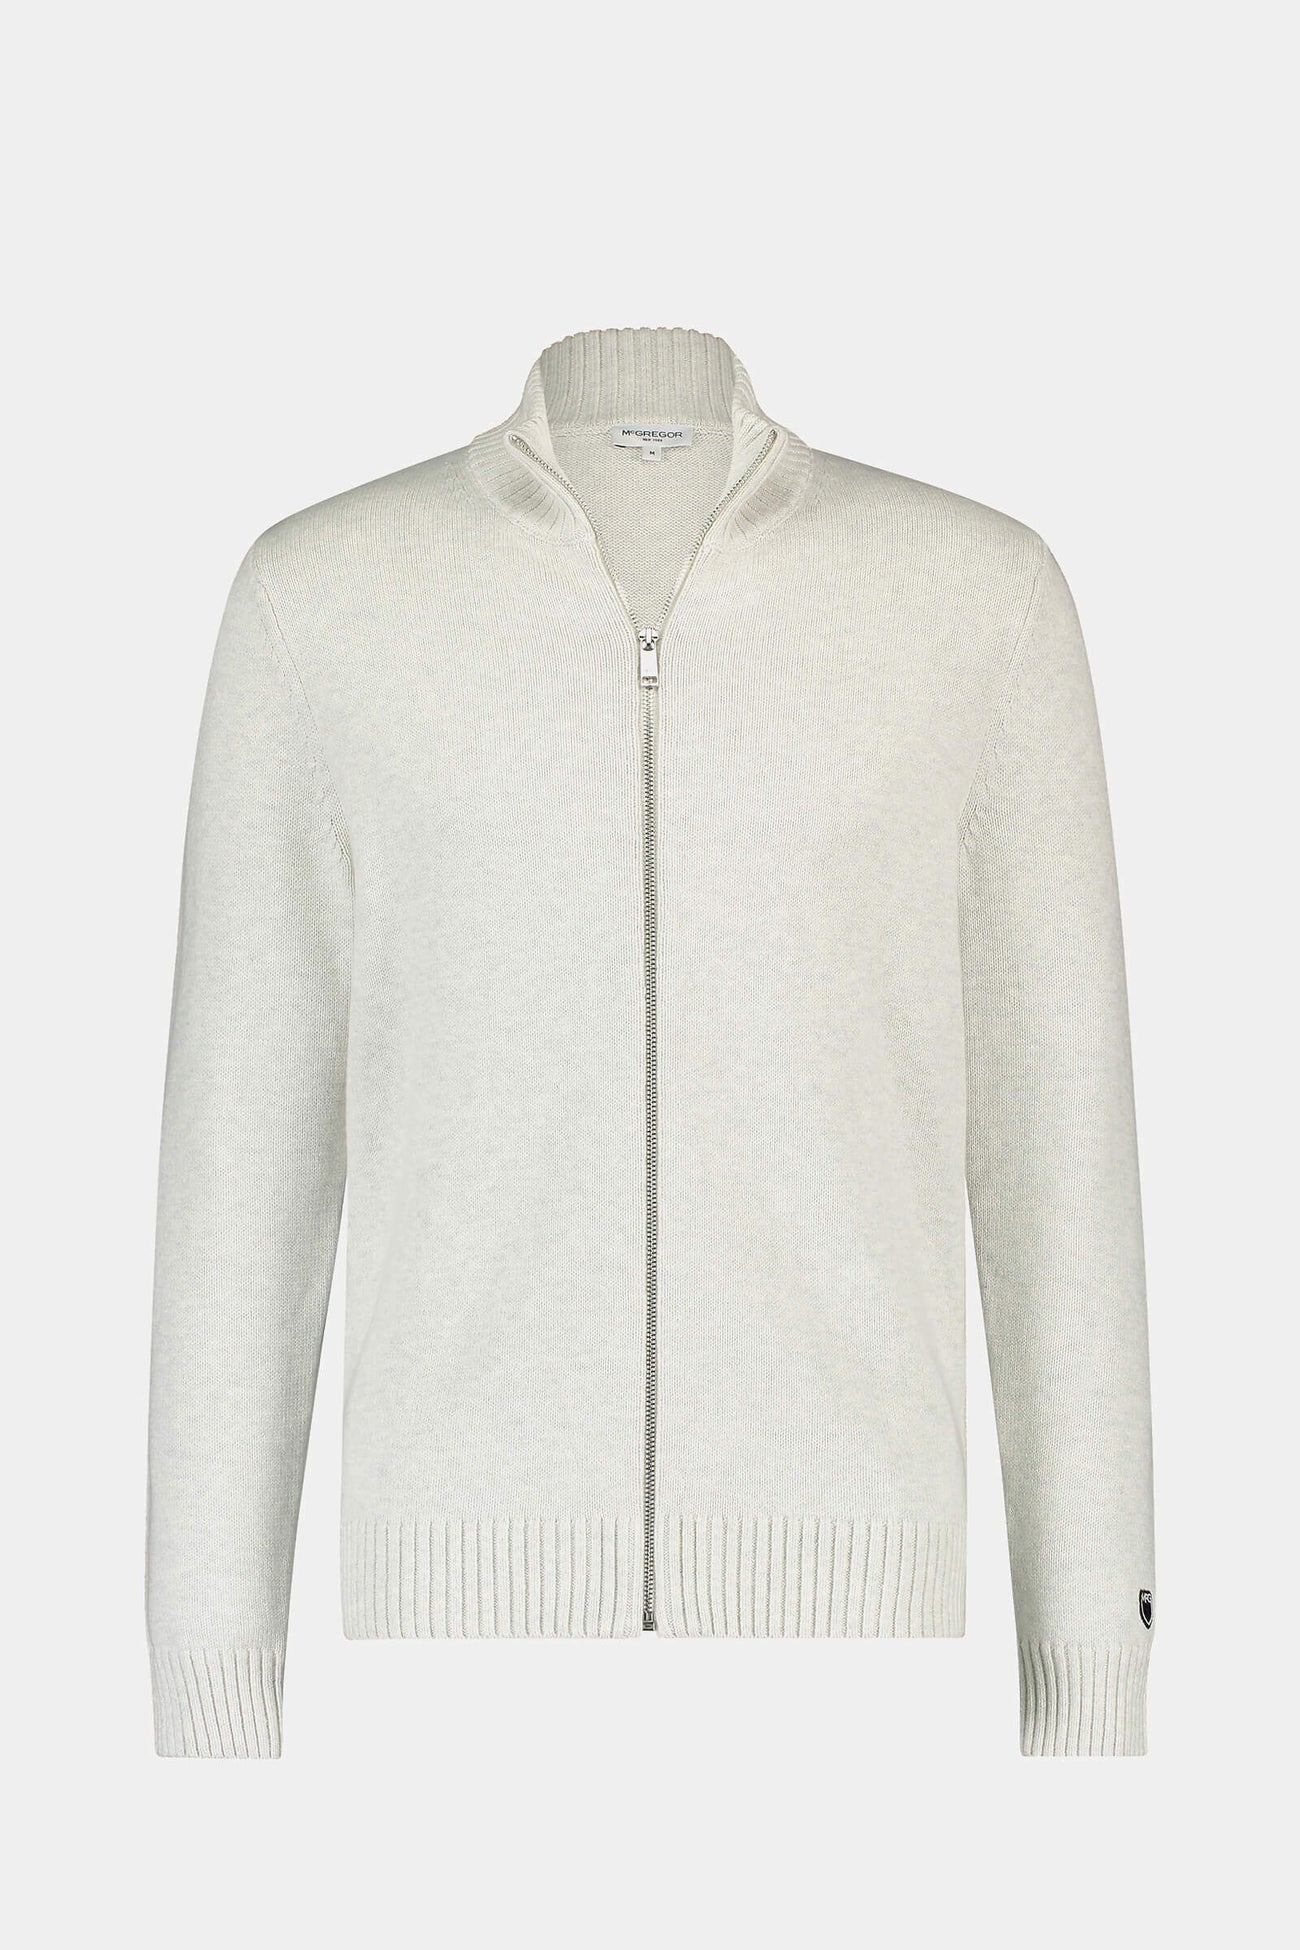 The McG Captain Cardigan